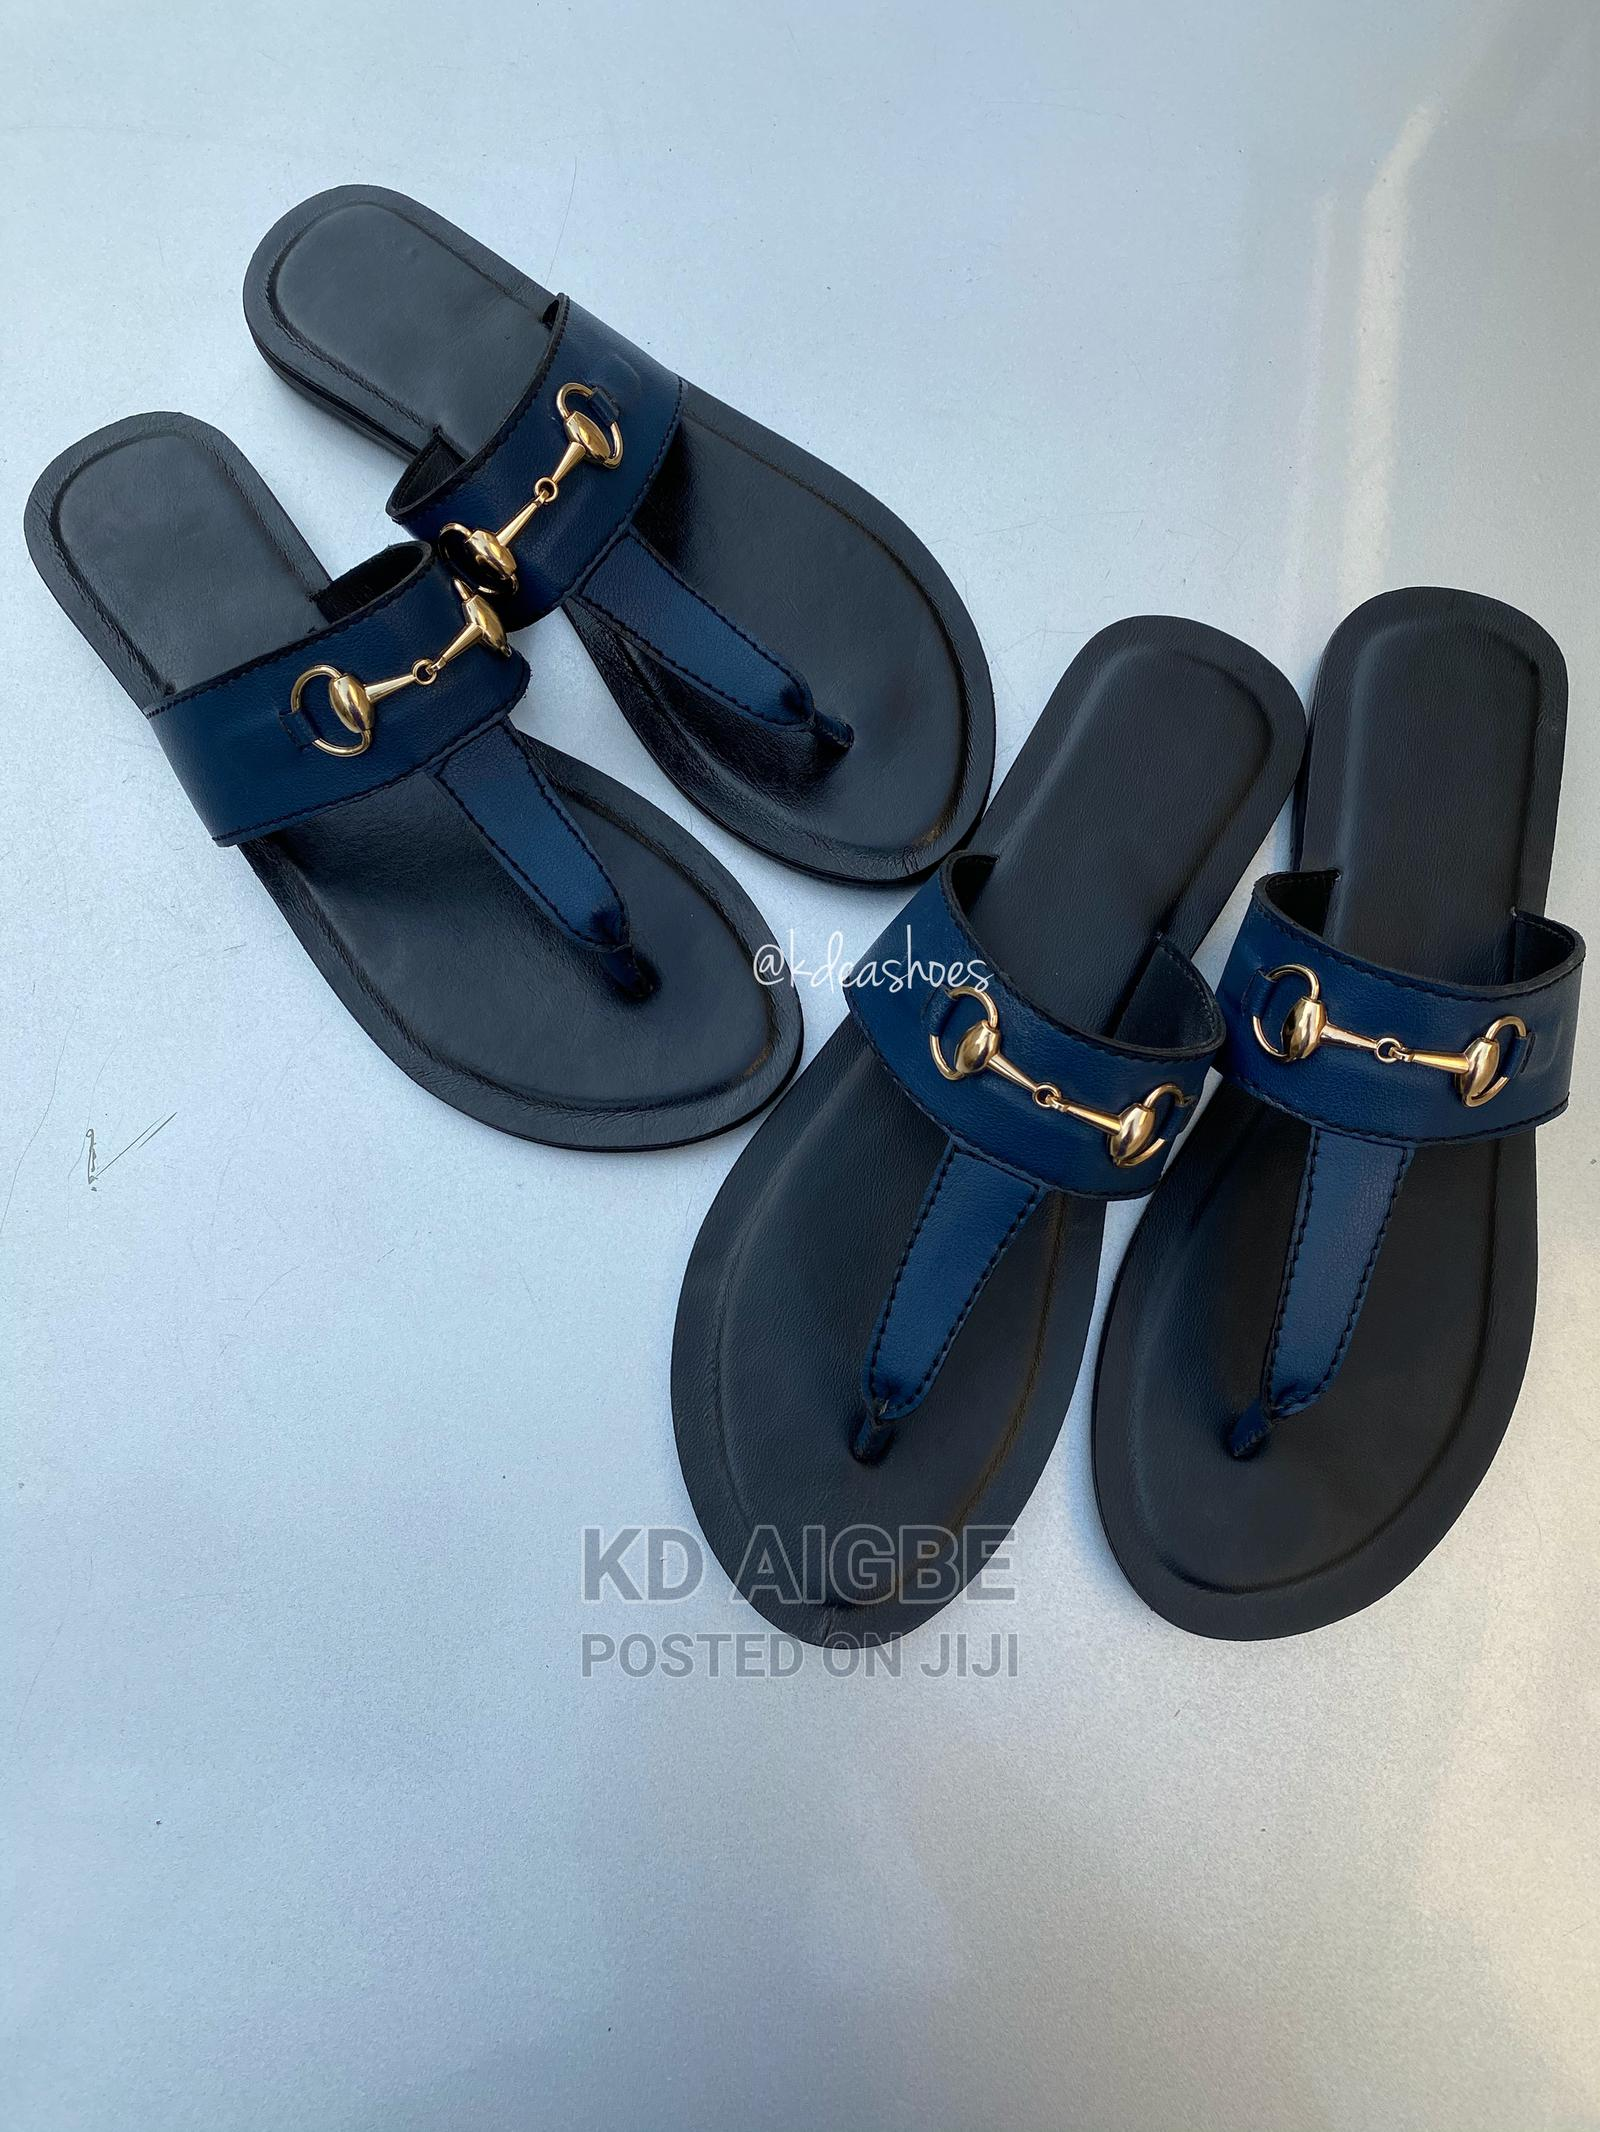 Kdea Shoes | Shoes for sale in Kubwa, Abuja (FCT) State, Nigeria